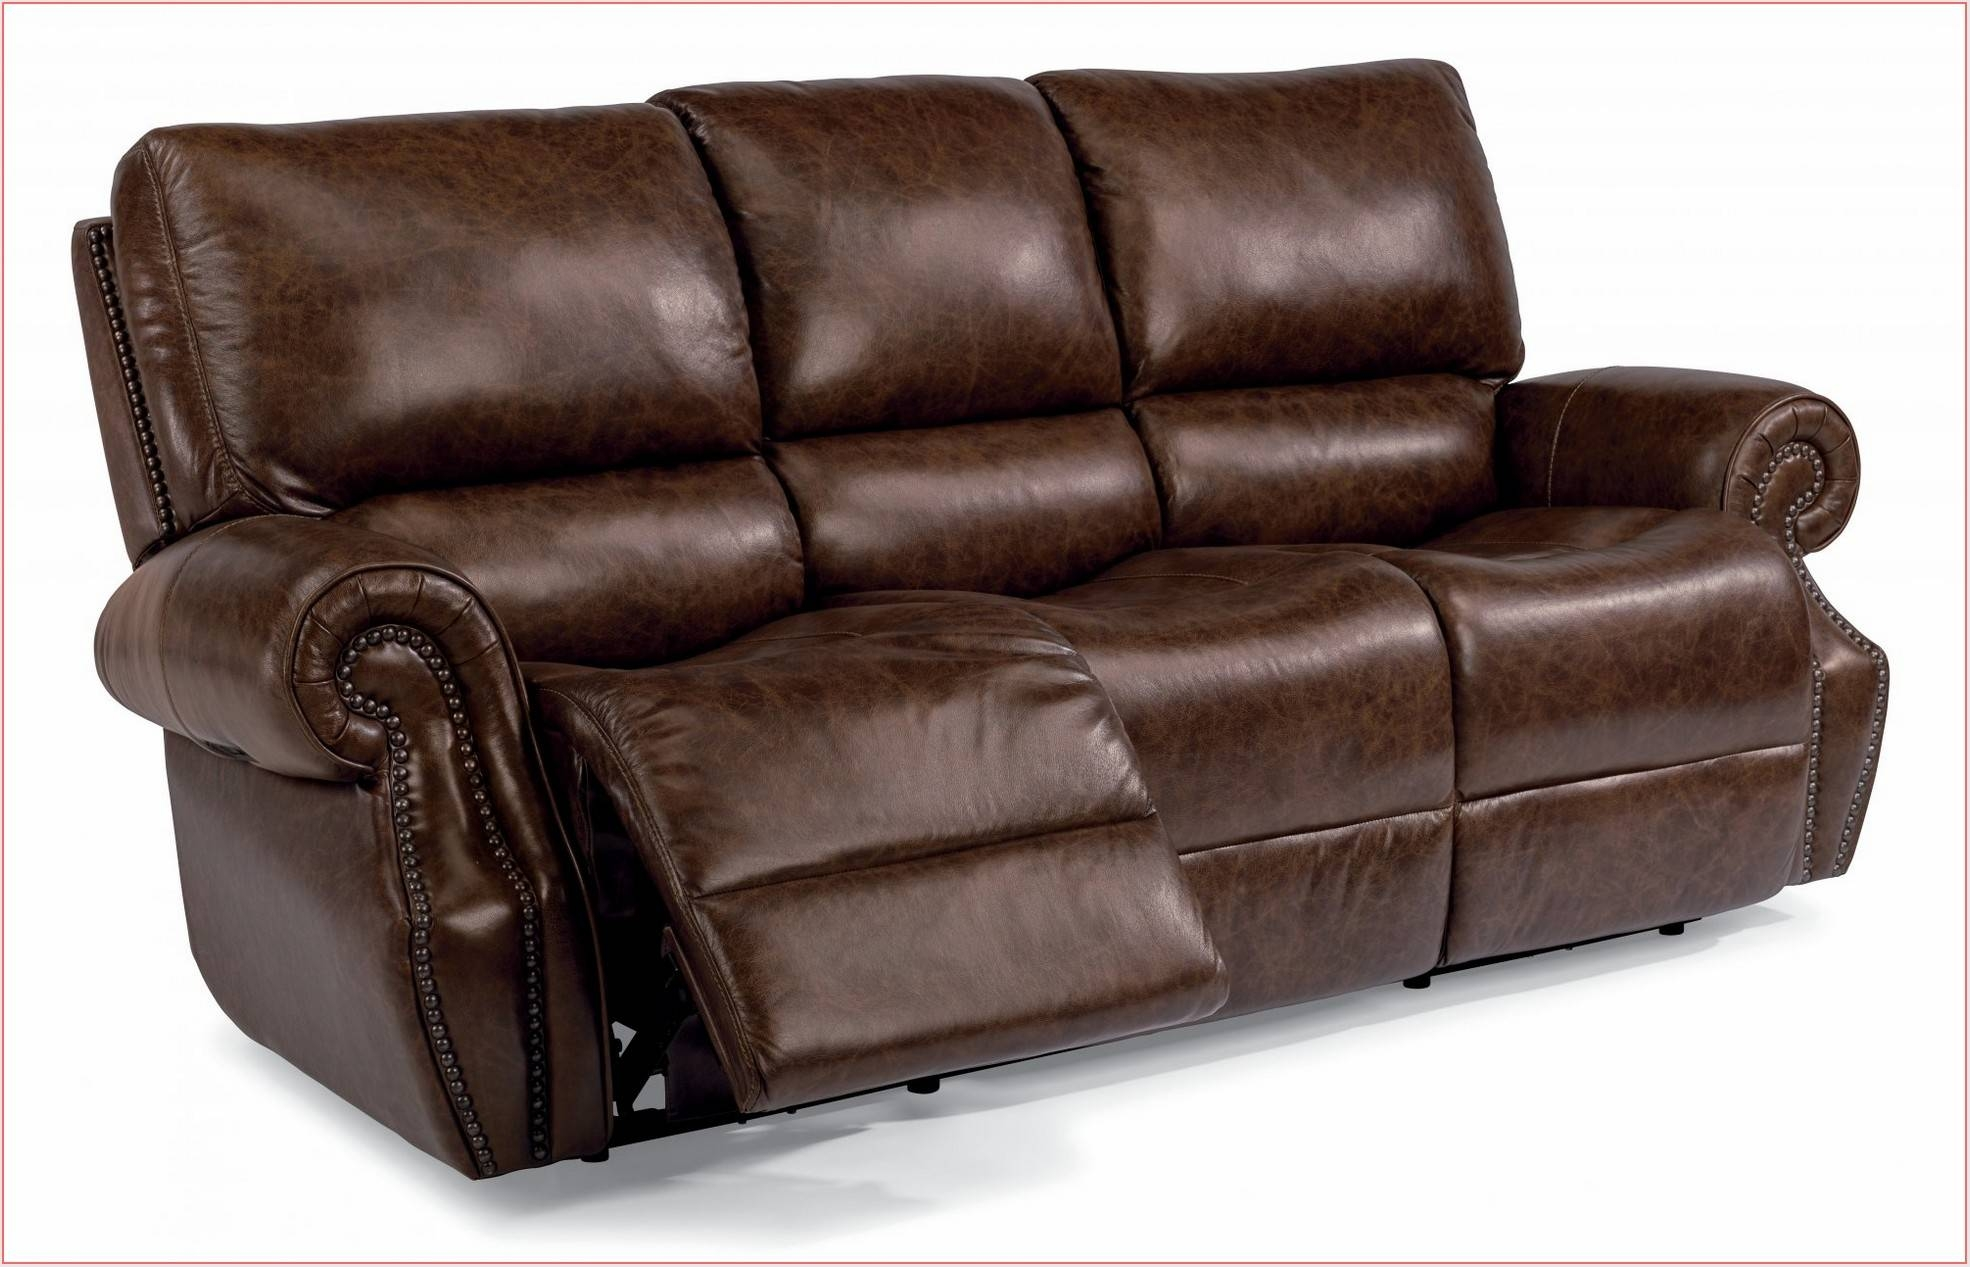 Closeout Sectional Sofas - Cleanupflorida for Closeout Sectional Sofas (Image 5 of 30)